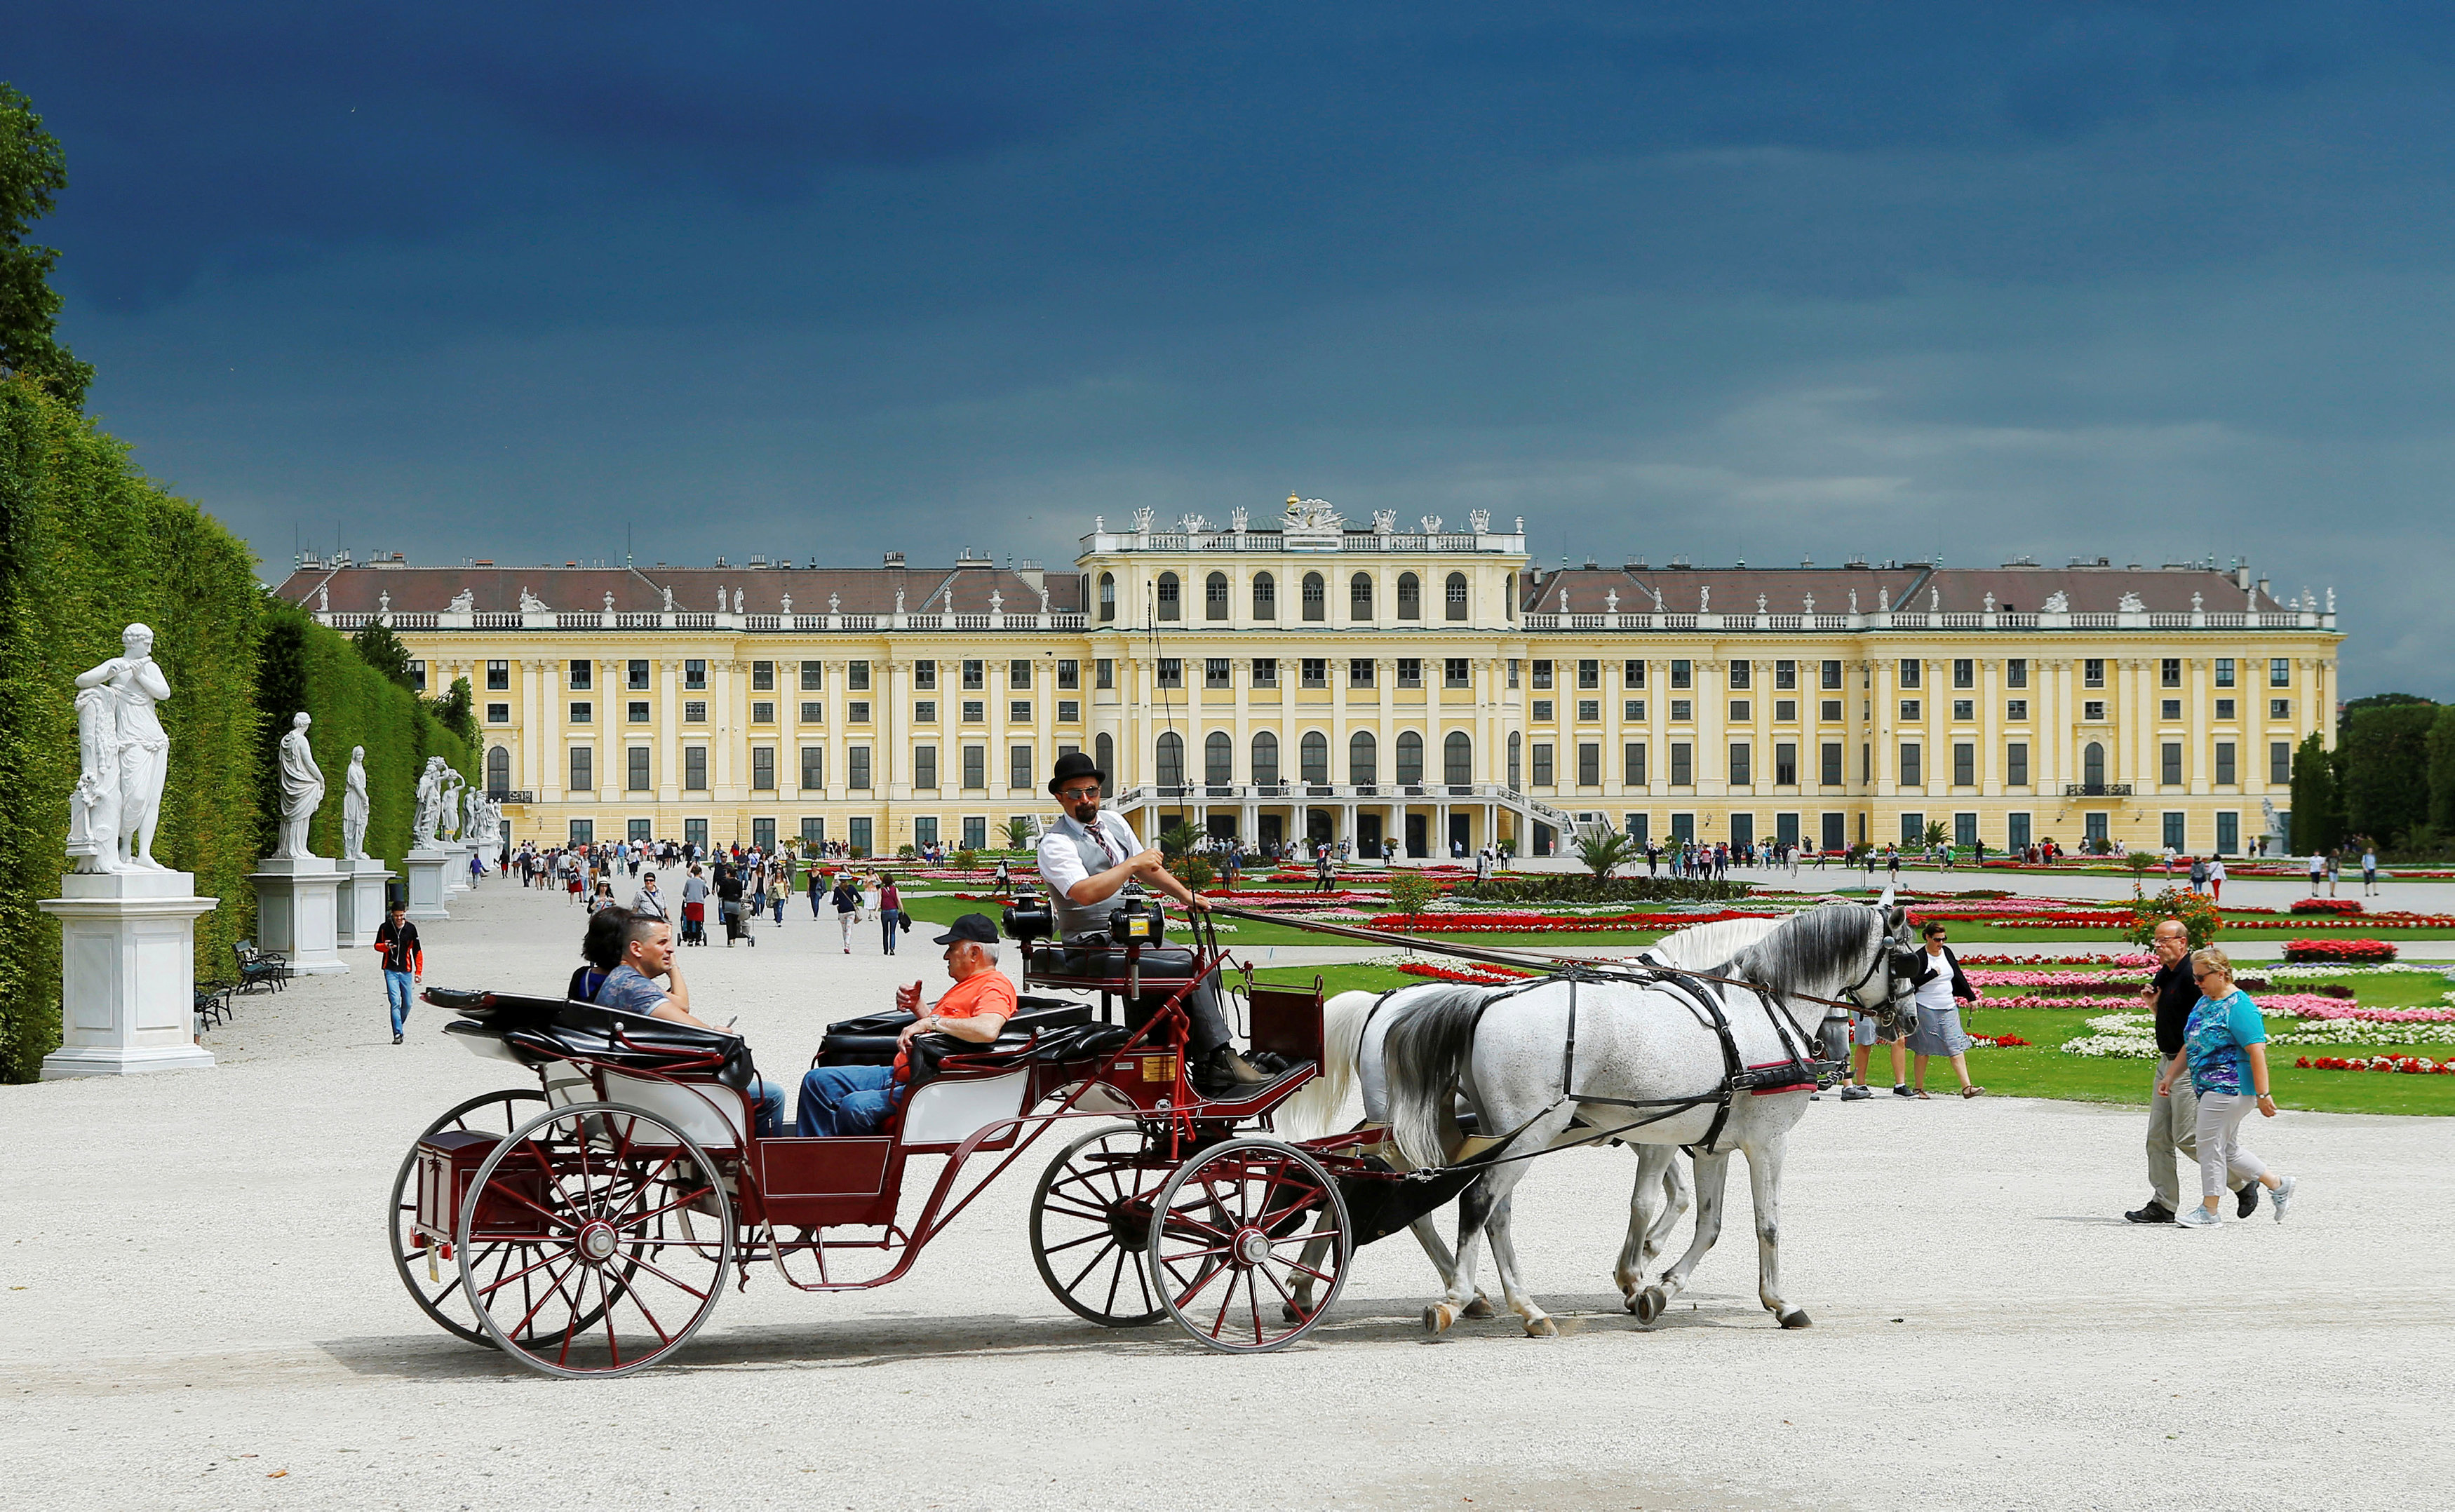 FILE PHOTO: A traditional Fiaker horse carriage passes imperial Schoenbrunn palace in Vienna, Austria, June 14, 2016. REUTERS/Heinz-Peter Bader/File Photo